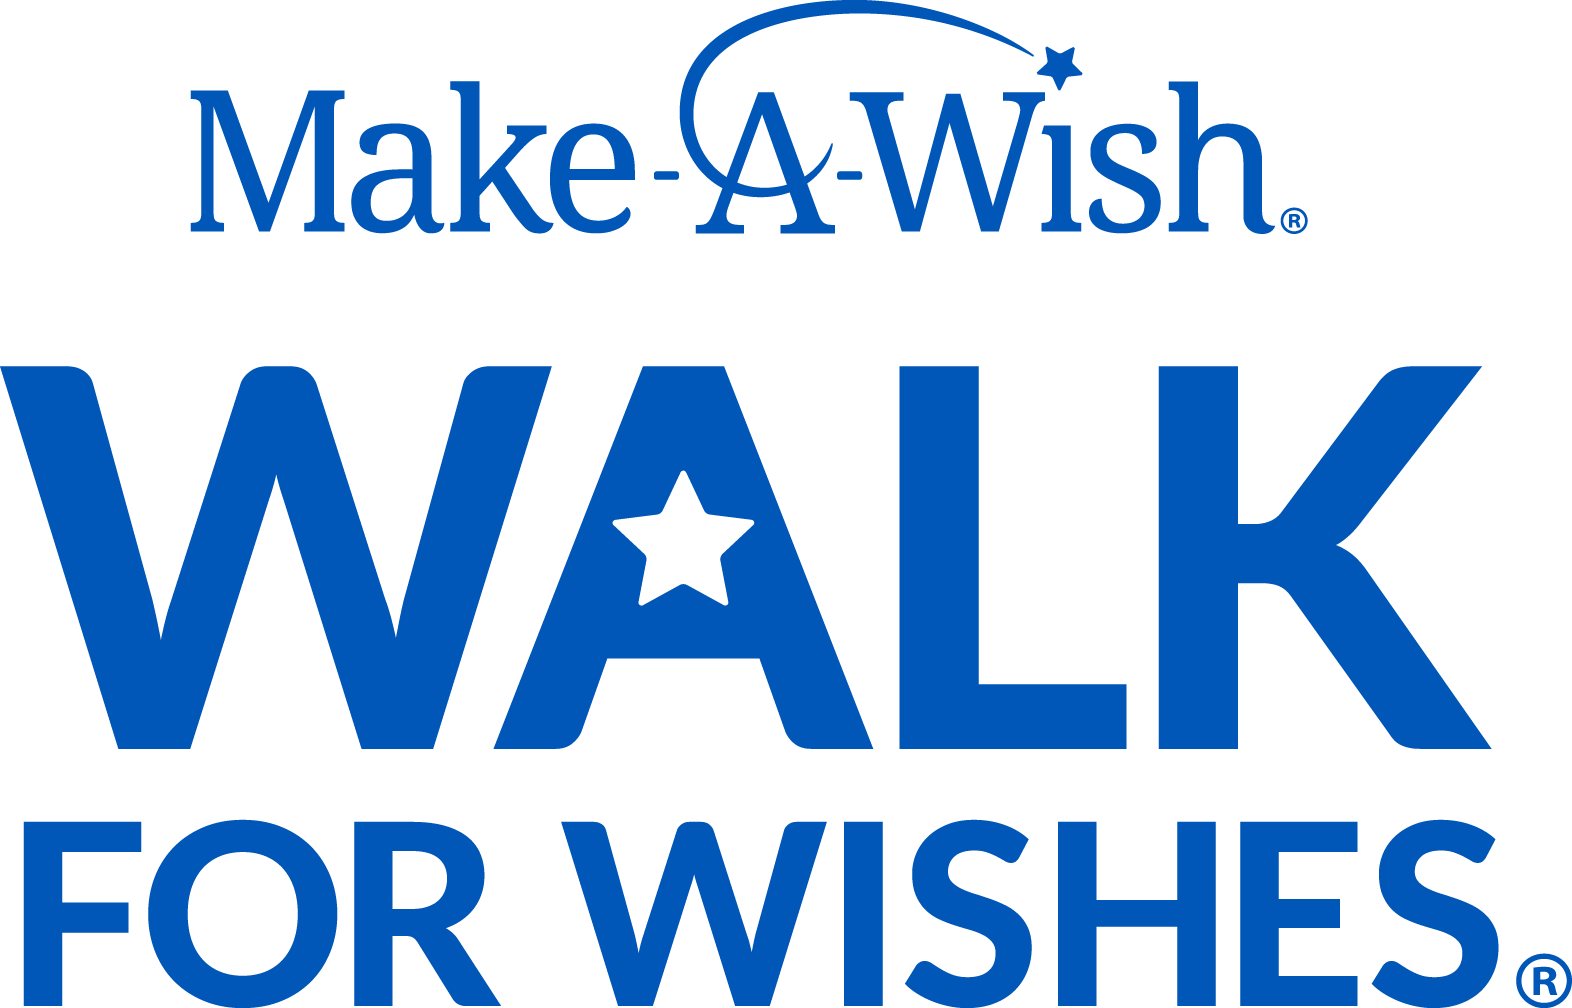 Run away with us for a day and join the Make-A-Wish circus. (Make-A-Wish)